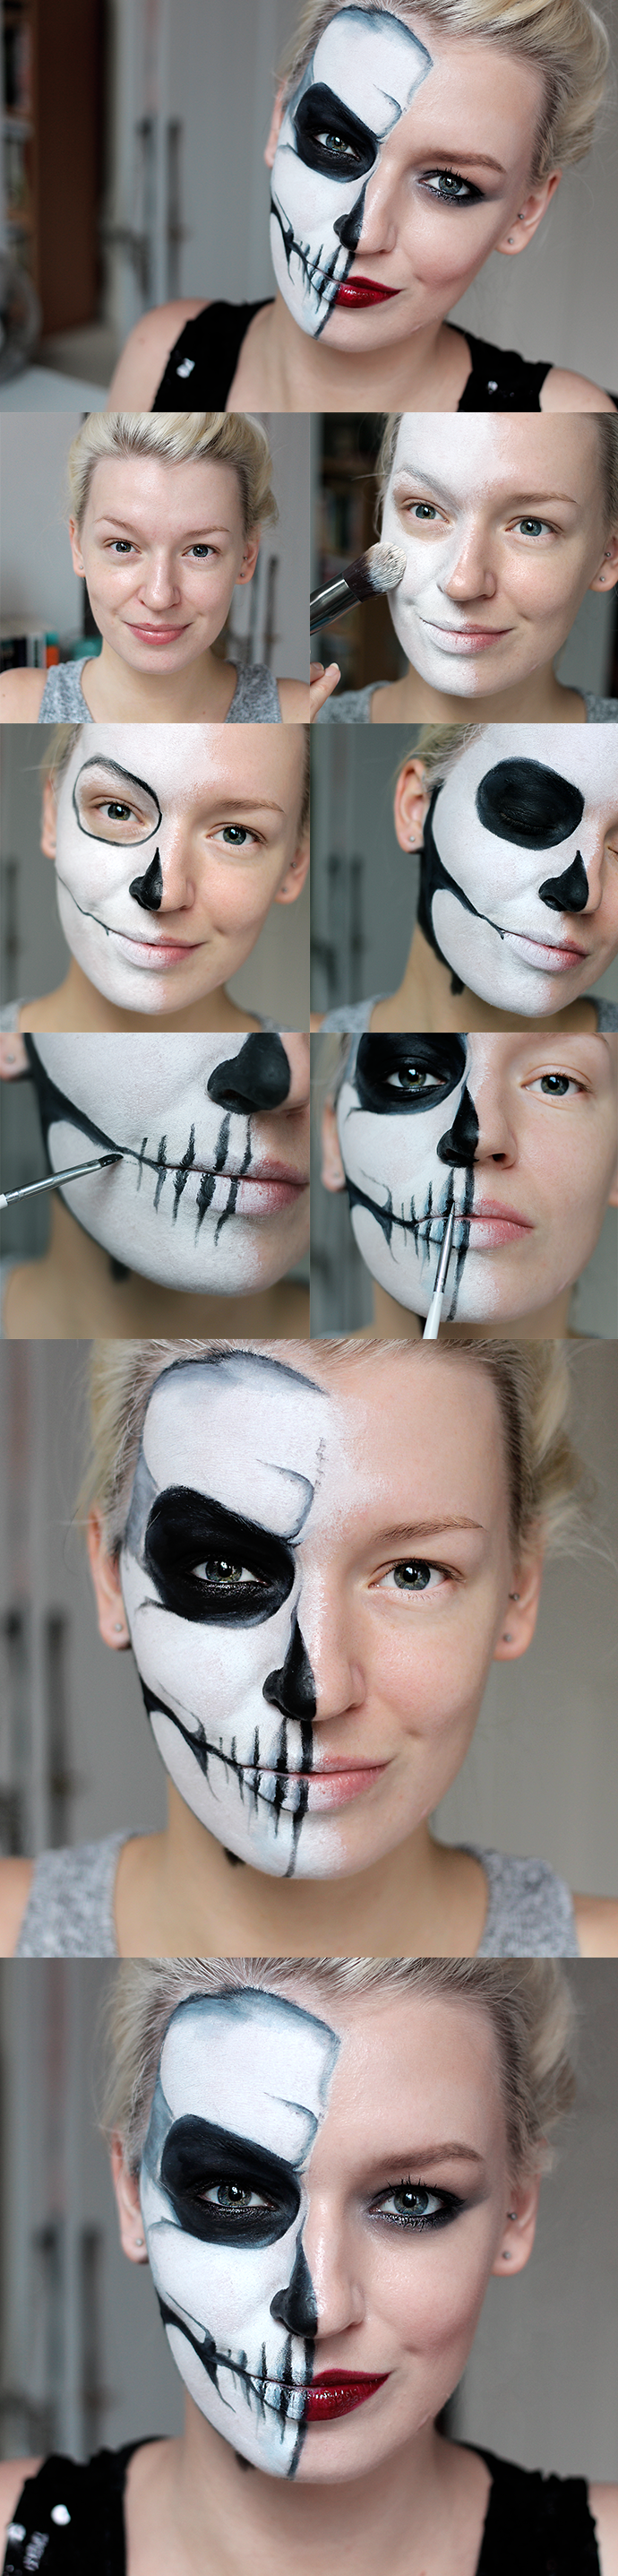 Totenkopf Schminken Anleitung Halbes Gesicht Halloween Simple Half Skull Glam Make Up Tutorial By Zoe